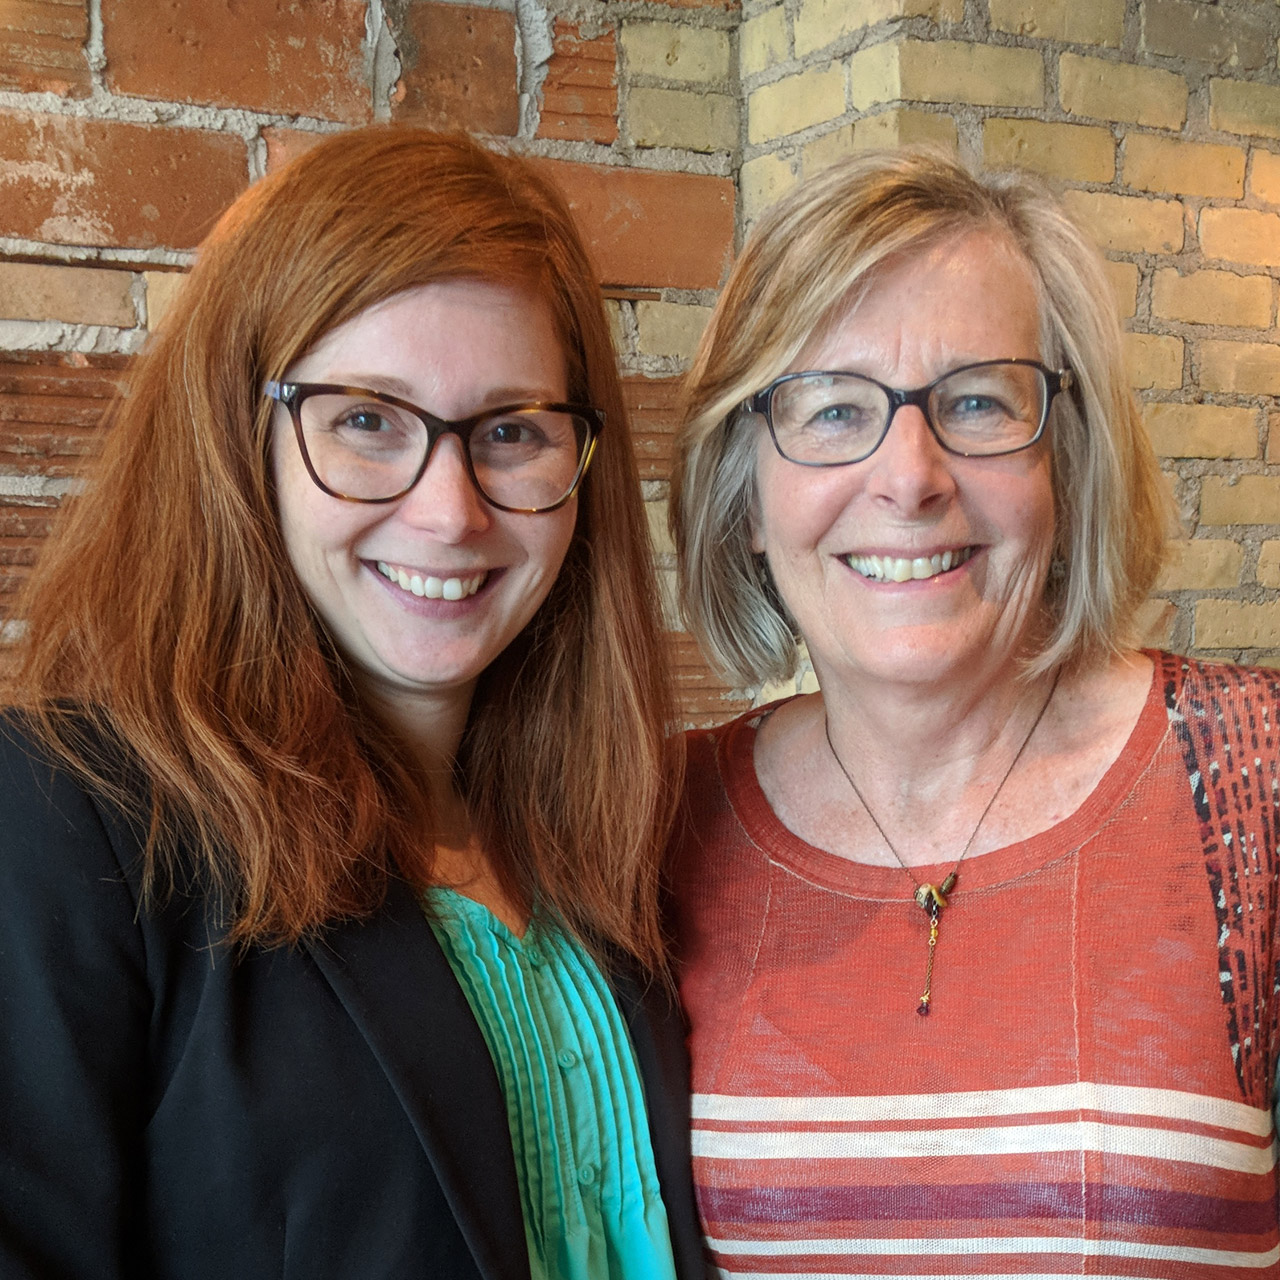 Susan Haigh - Former CEO of Habitat for Humanity, Met Council Chair and Ramsey County Commissioner